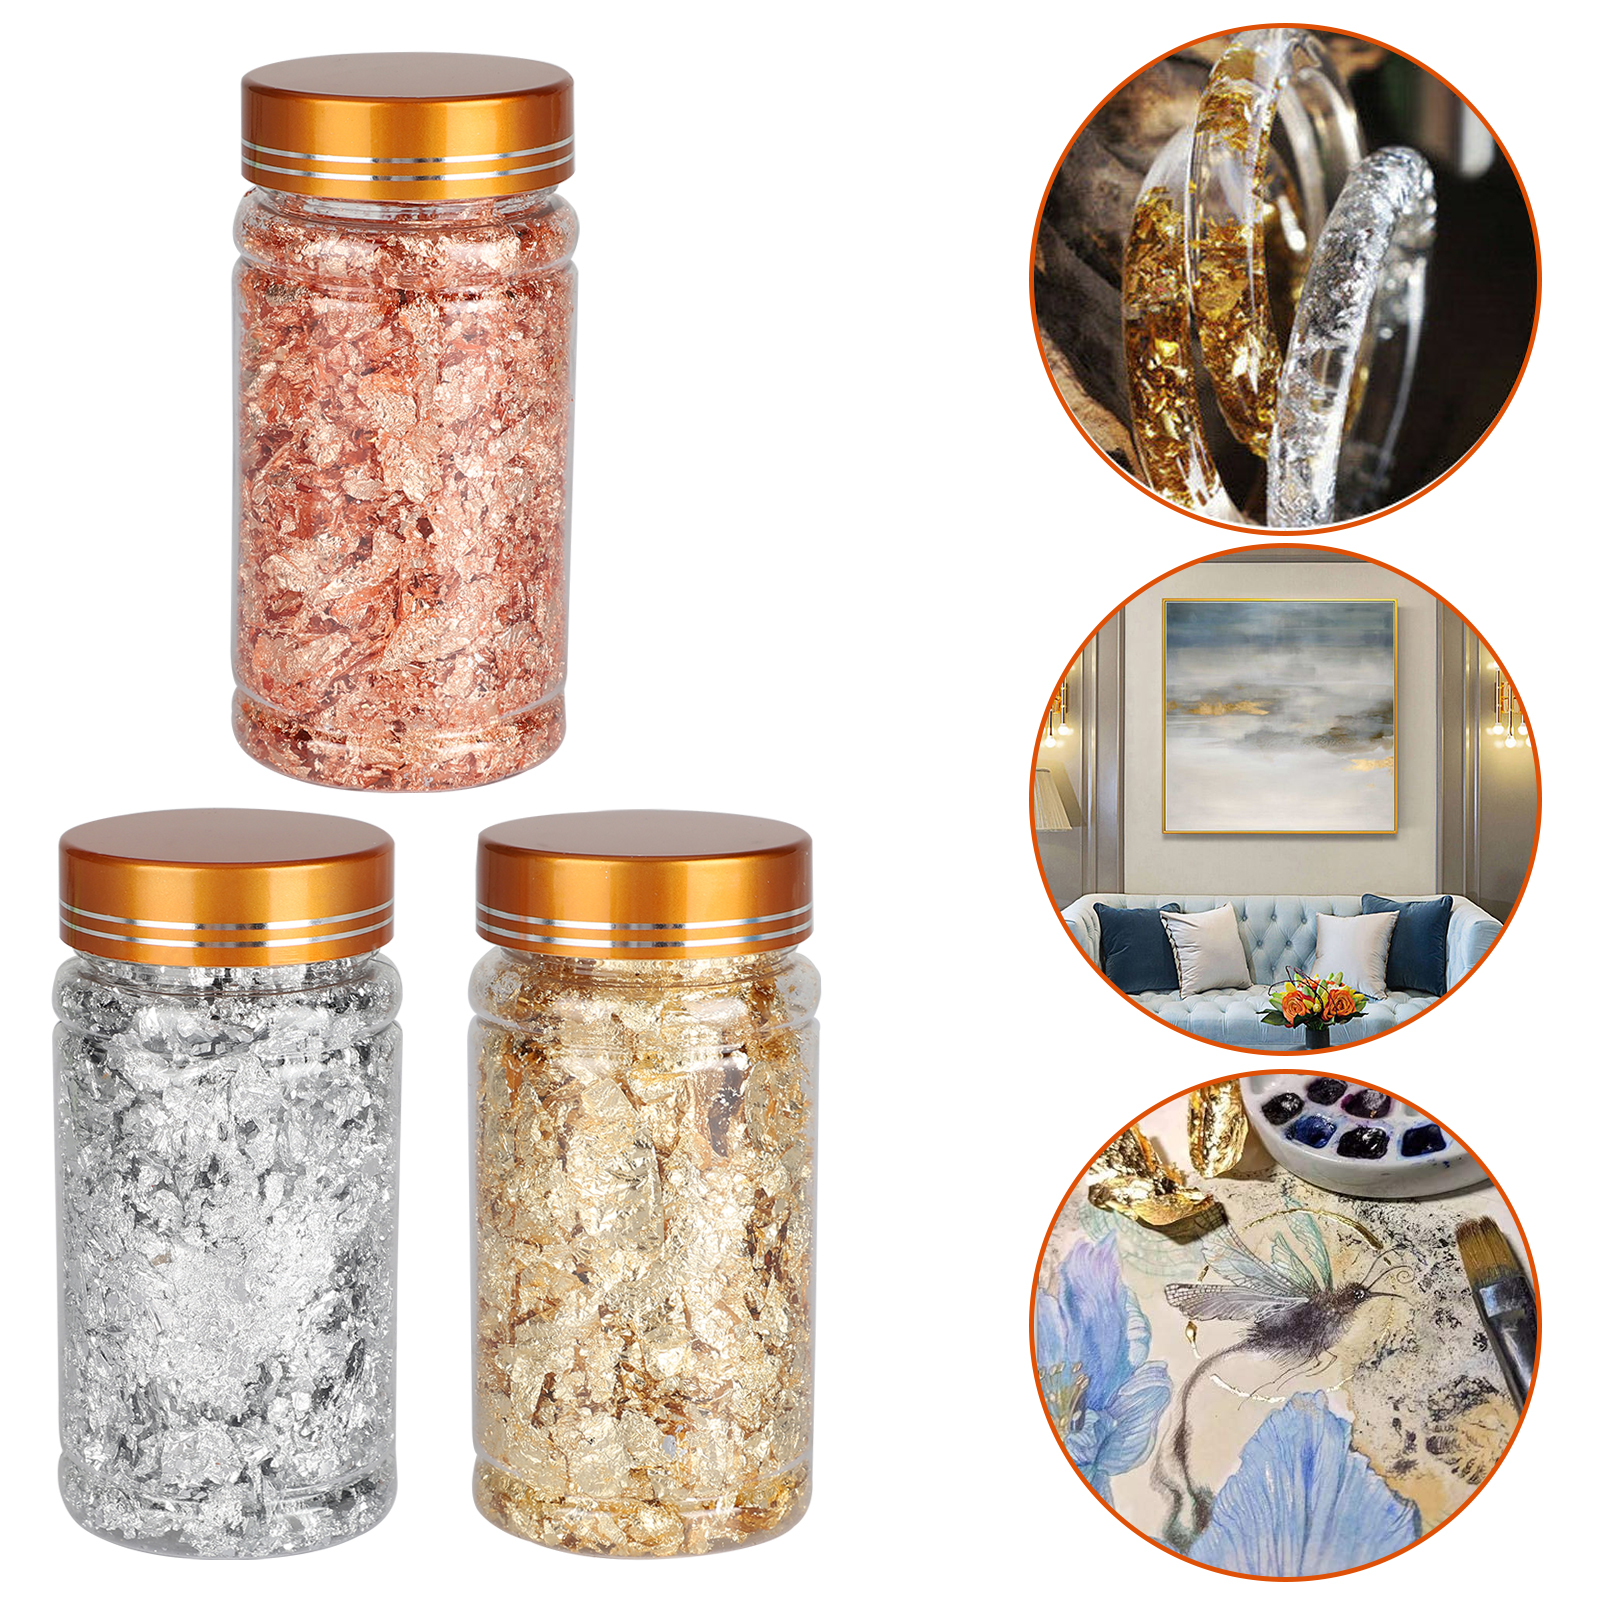 Gold-Foil-Leaf-Flake-Epoxy-Resin-Filling-Materials-DIY-Molds-Jewelry-Nail-Decor